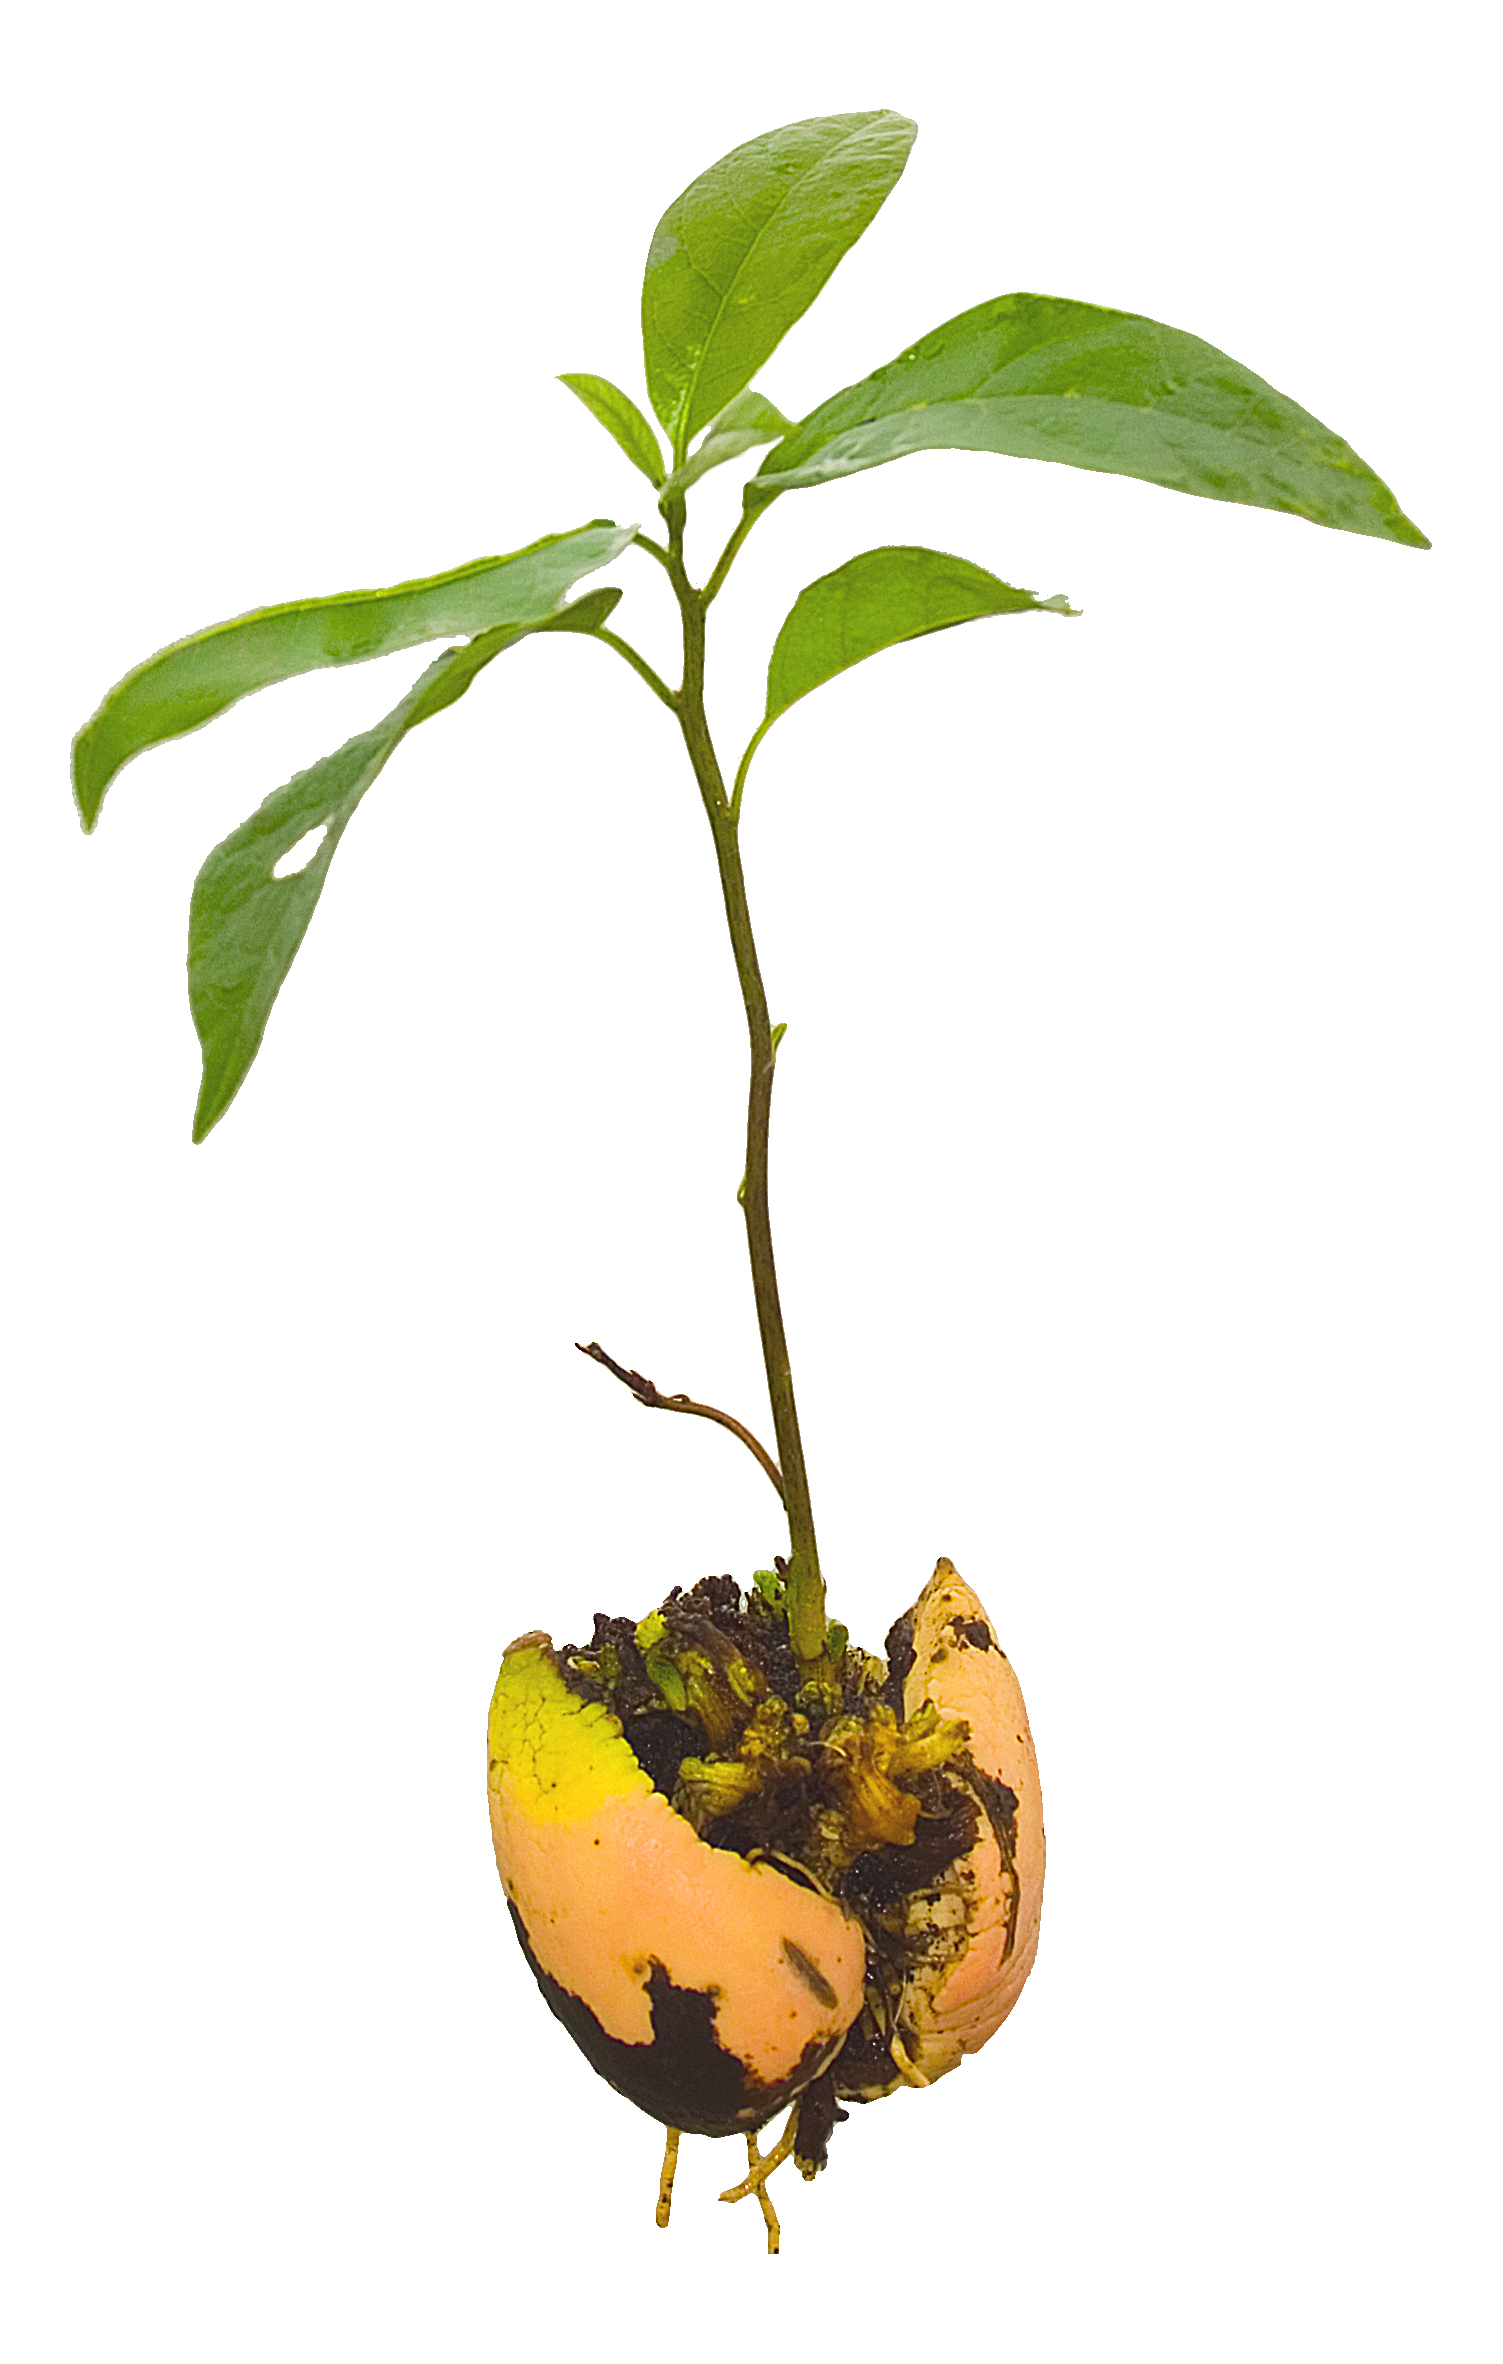 A Americana Young Avocado Plant Seedling Complete With Parted Pit And Roots